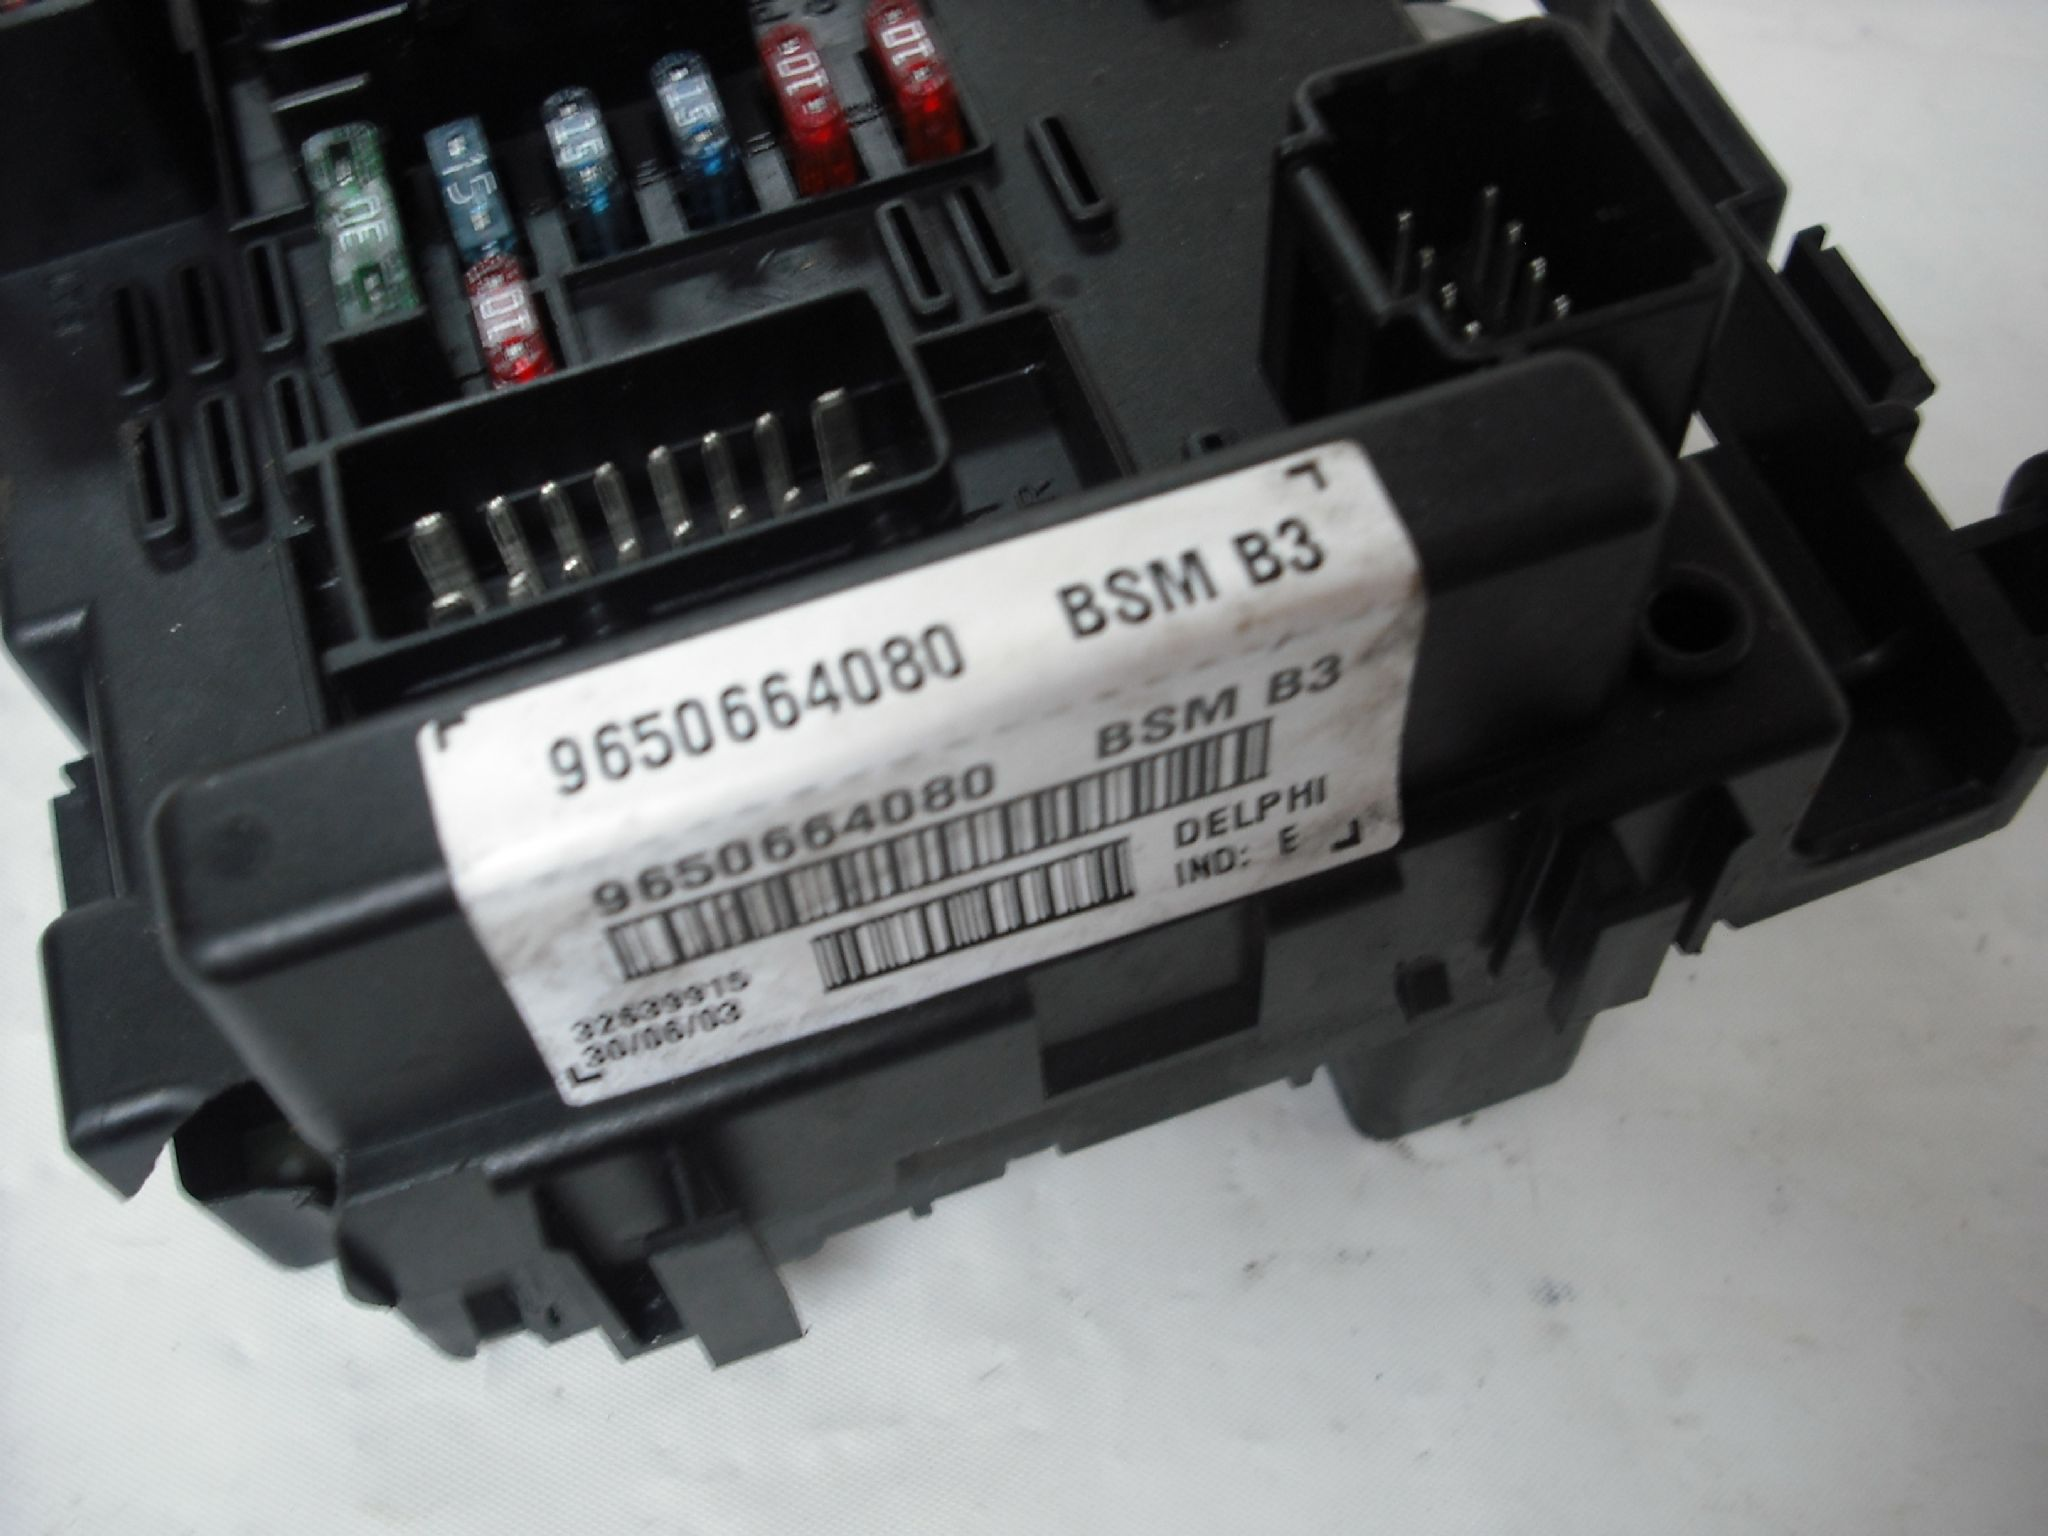 citroen c8 fuse box locations citroen c8 manual download. Black Bedroom Furniture Sets. Home Design Ideas